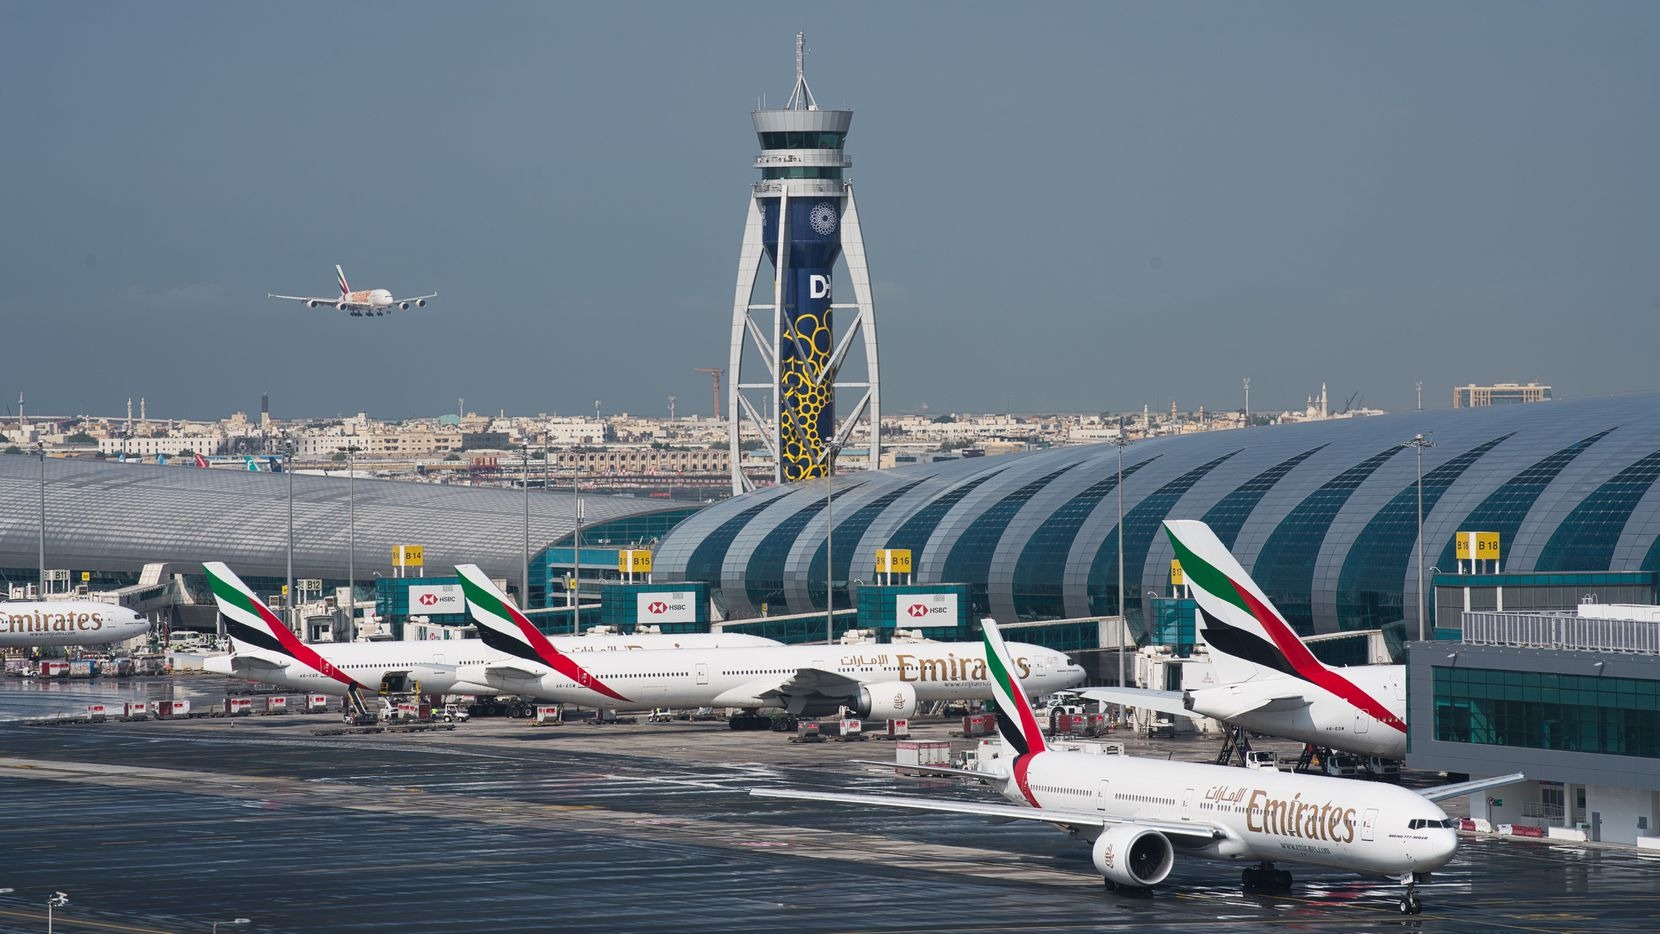 An Emirates jetliner comes in for landing at Dubai International Airport in Dubai, United Arab Emirates.